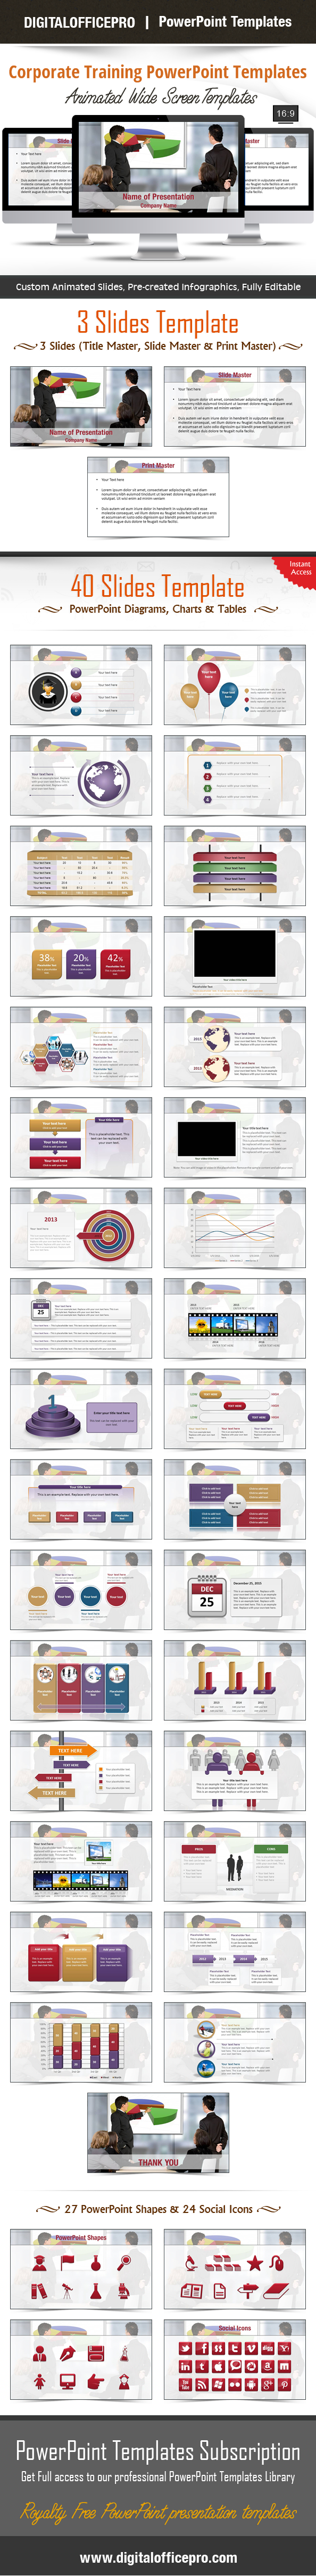 Corporate training powerpoint template backgrounds diagram chart impress and engage your audience with corporate training powerpoint template and corporate training powerpoint backgrounds from toneelgroepblik Gallery